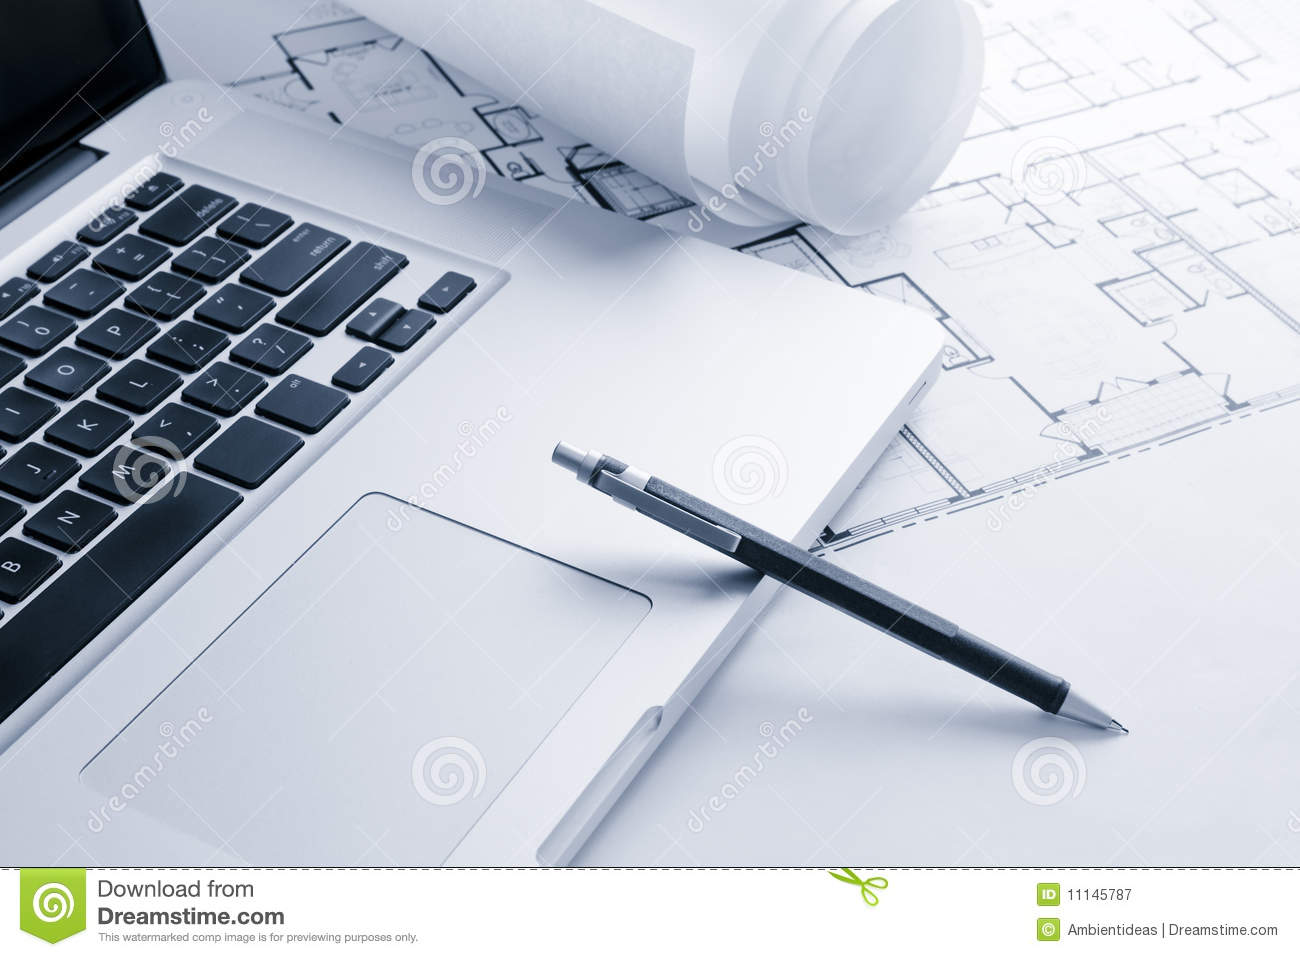 Laptop With Mechanical Pencil On Blueprints Royalty Free